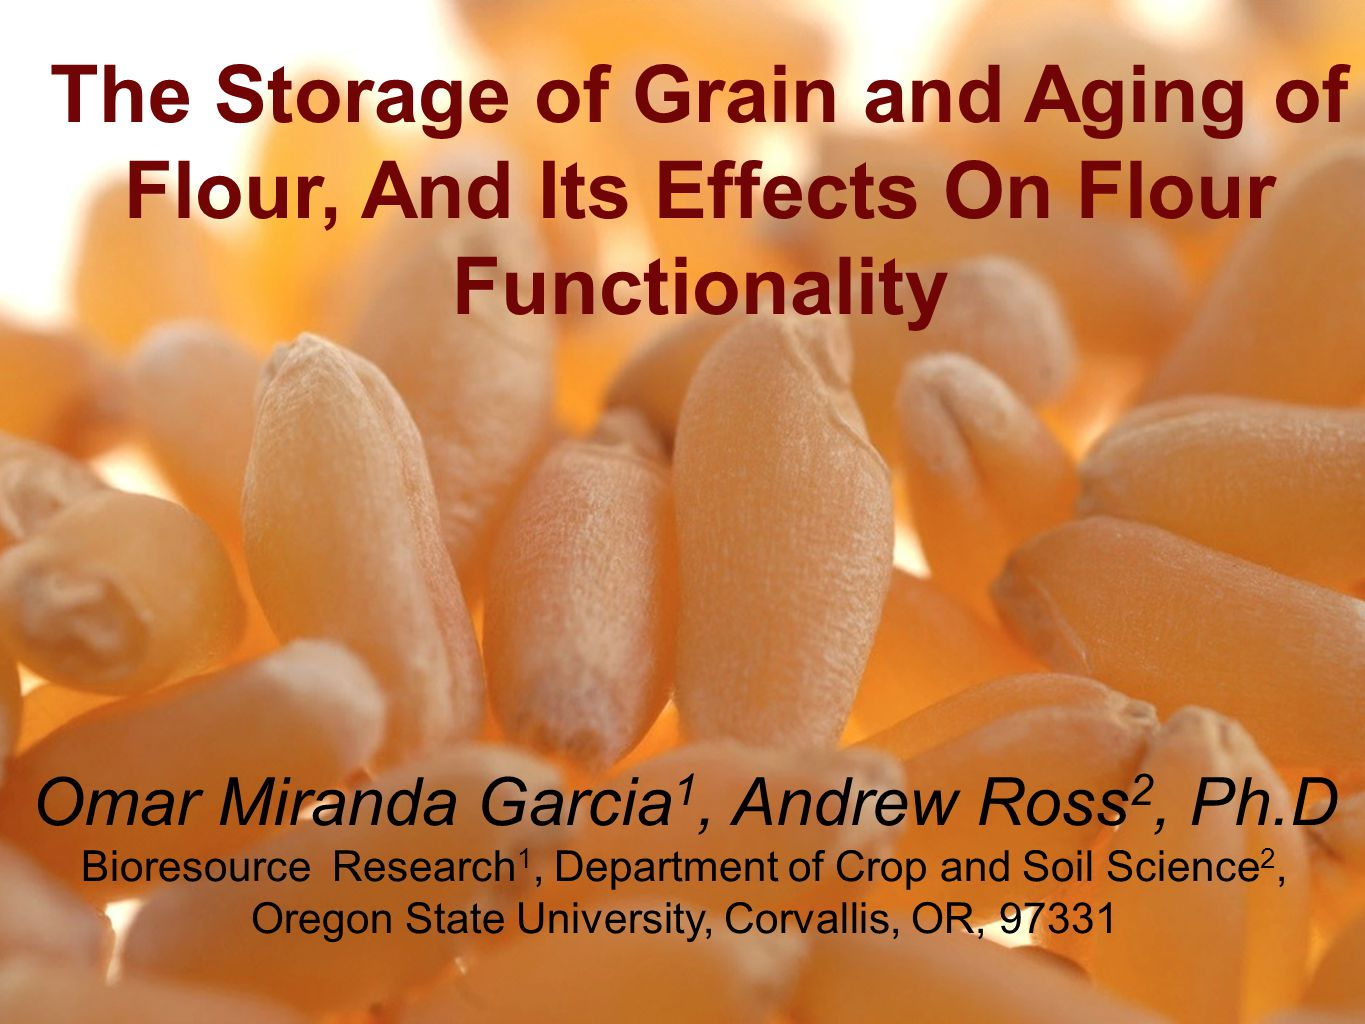 Damaged starch granules Up to 10% of granules are damaged during milling Damaged granules have higher absorption capacity